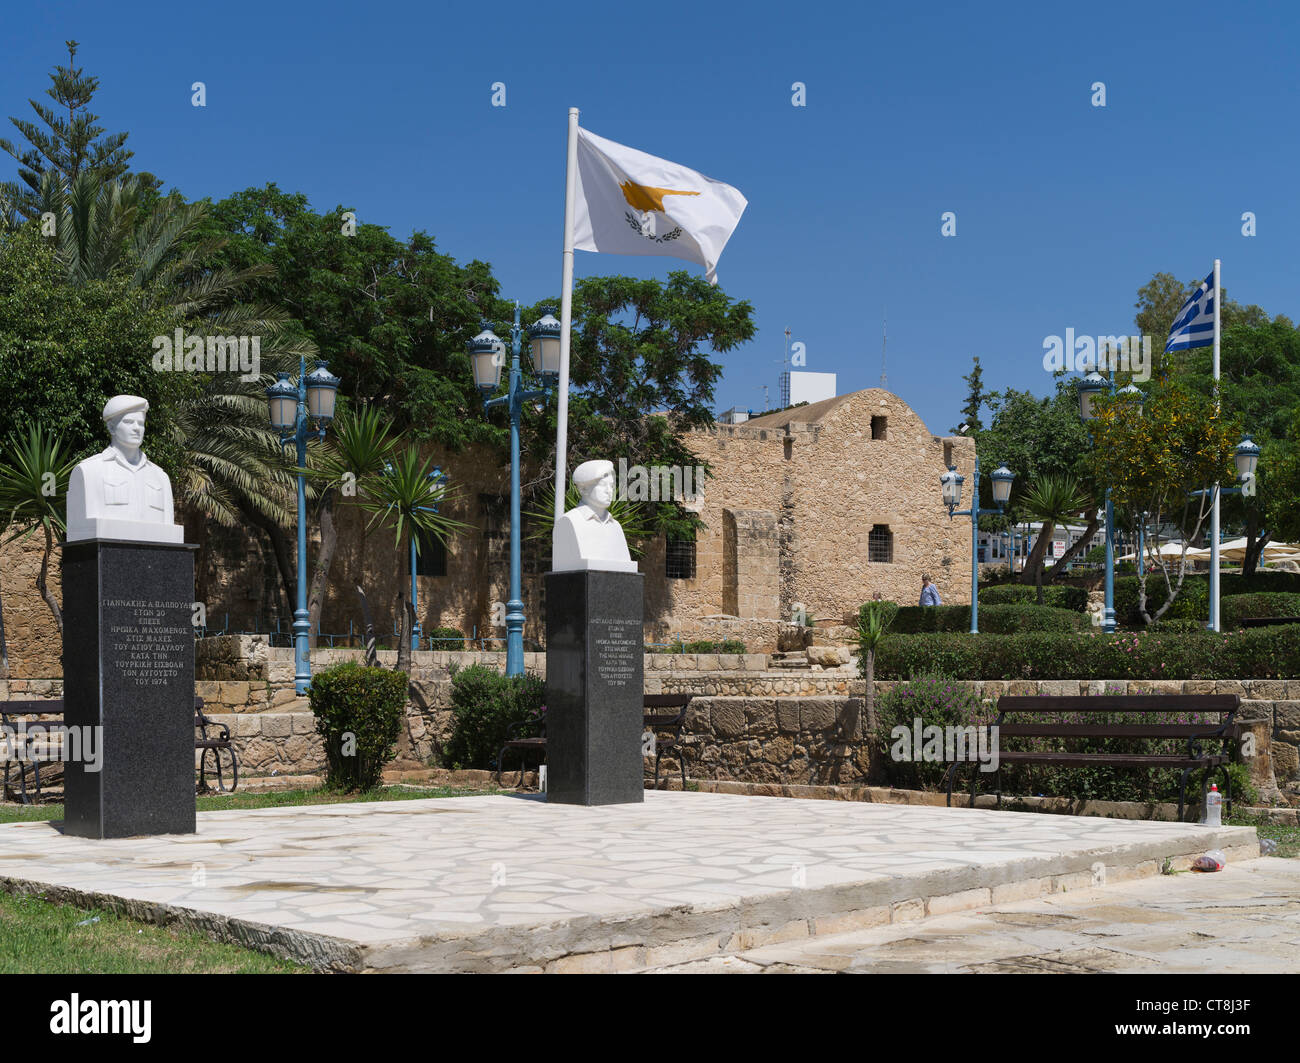 dh  AYIA NAPA CYPRUS Greek soldier memorial 1974 war soldiers busts and Cyprus flag cypriot wars - Stock Image